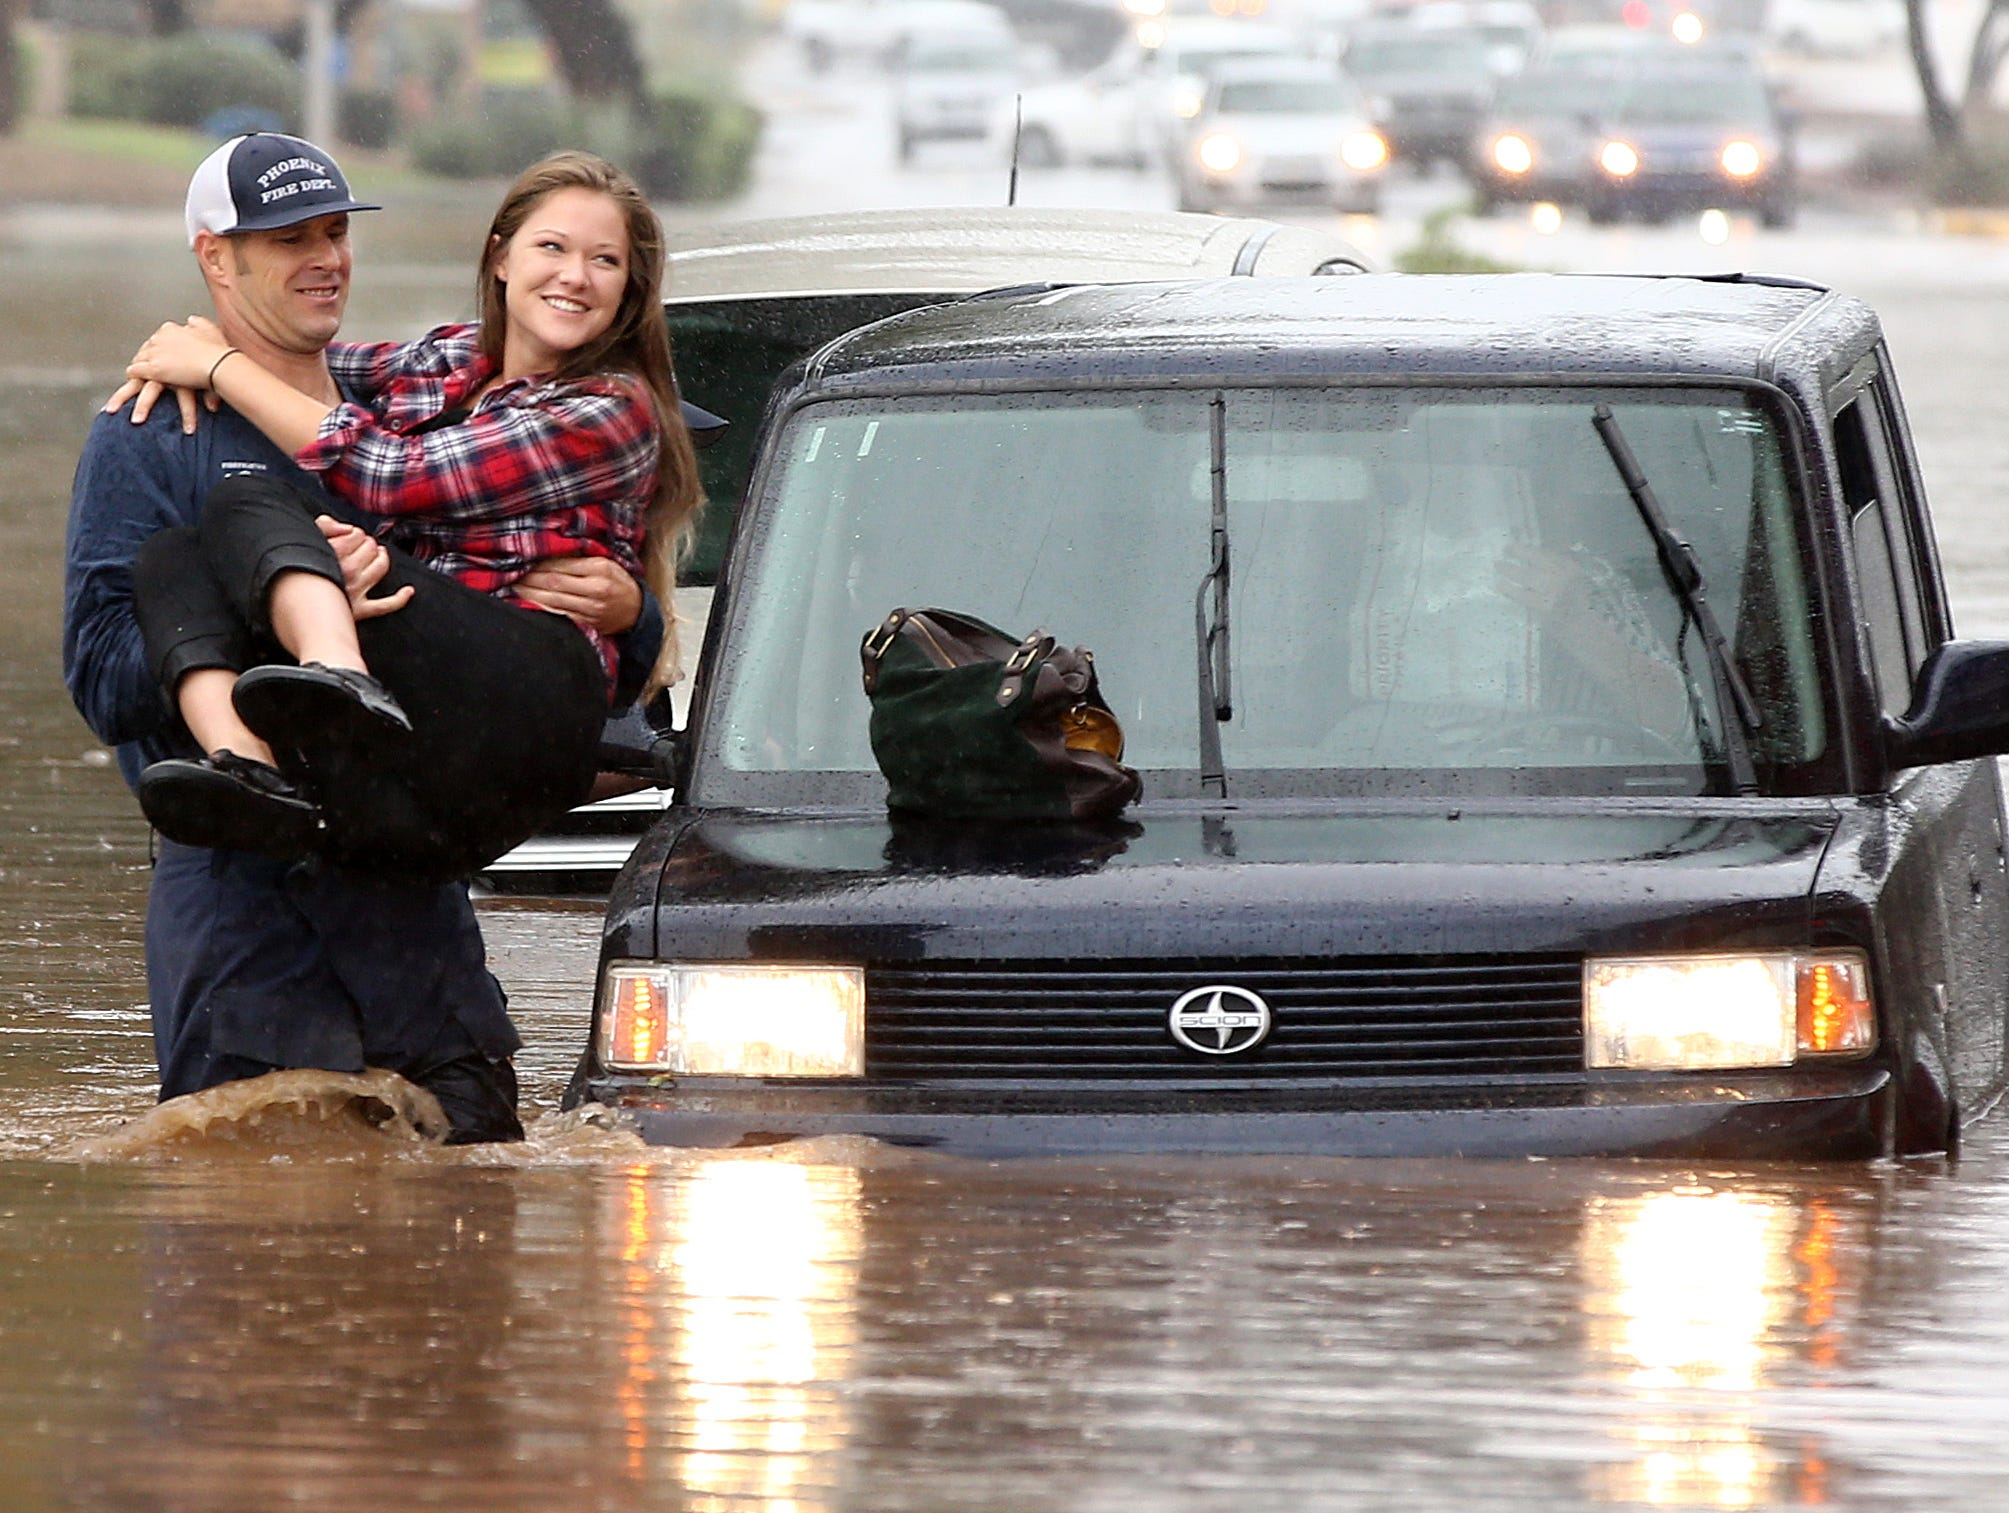 A Phoenix firefighter carries a motorist from her car after being caught in flood waters that covered Tatum Blvd. north of Shea Boulevard in Phoenix. The remnants of Hurricane Rosa is bringing heavy rain to central Arizona.